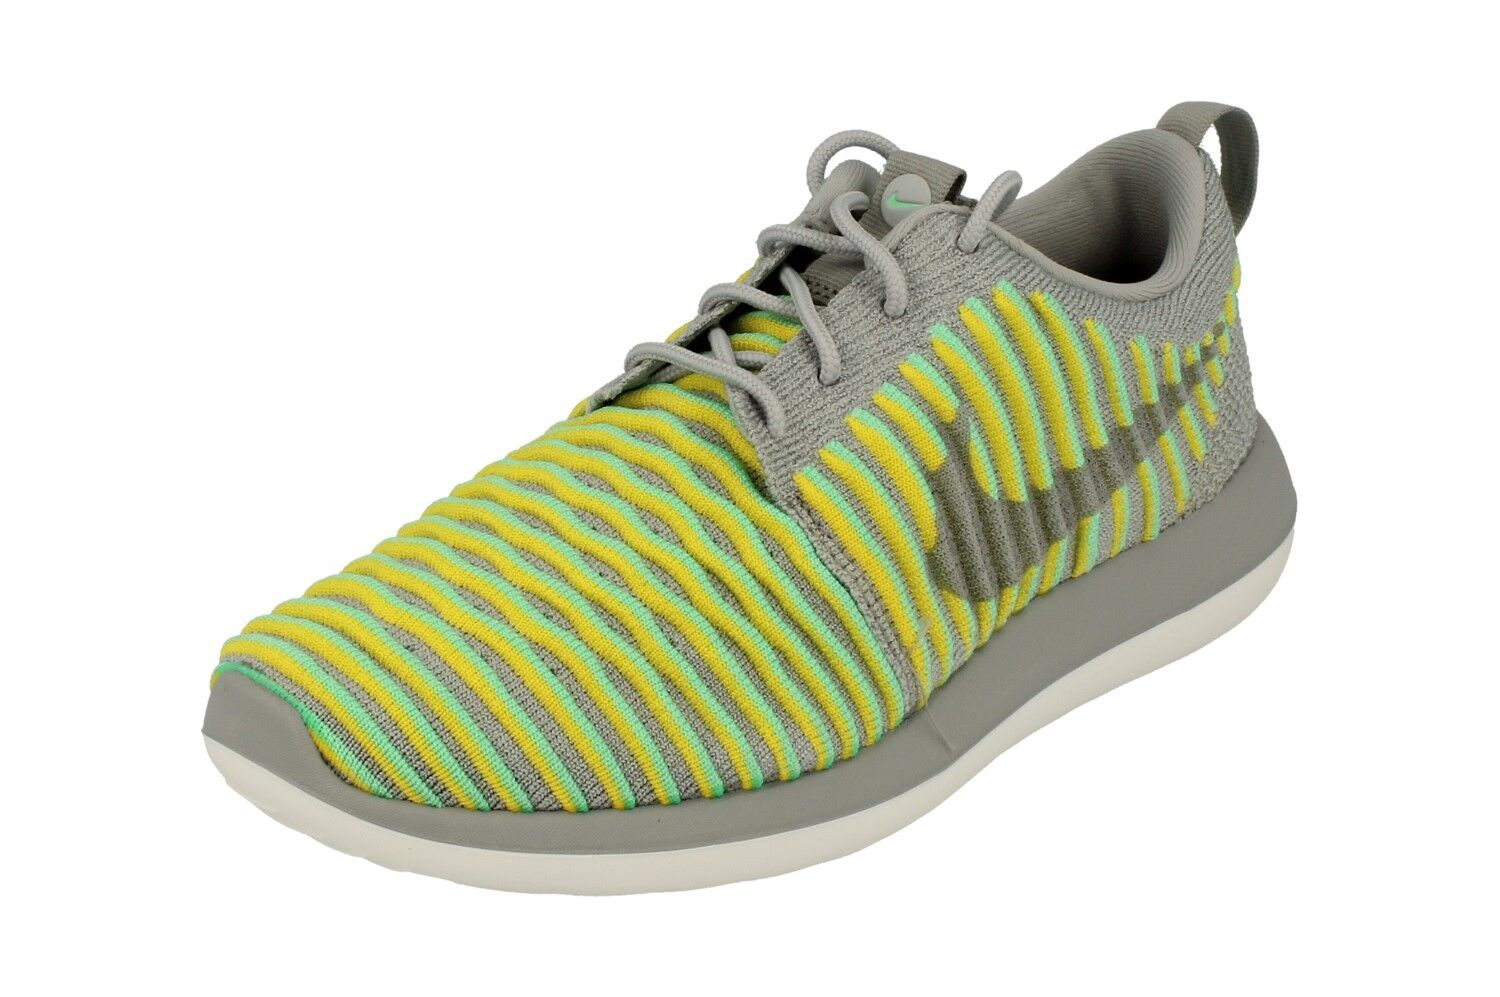 Nike Womens Roshe Two Flyknit Running Trainers 844929 Sneakers shoes 004